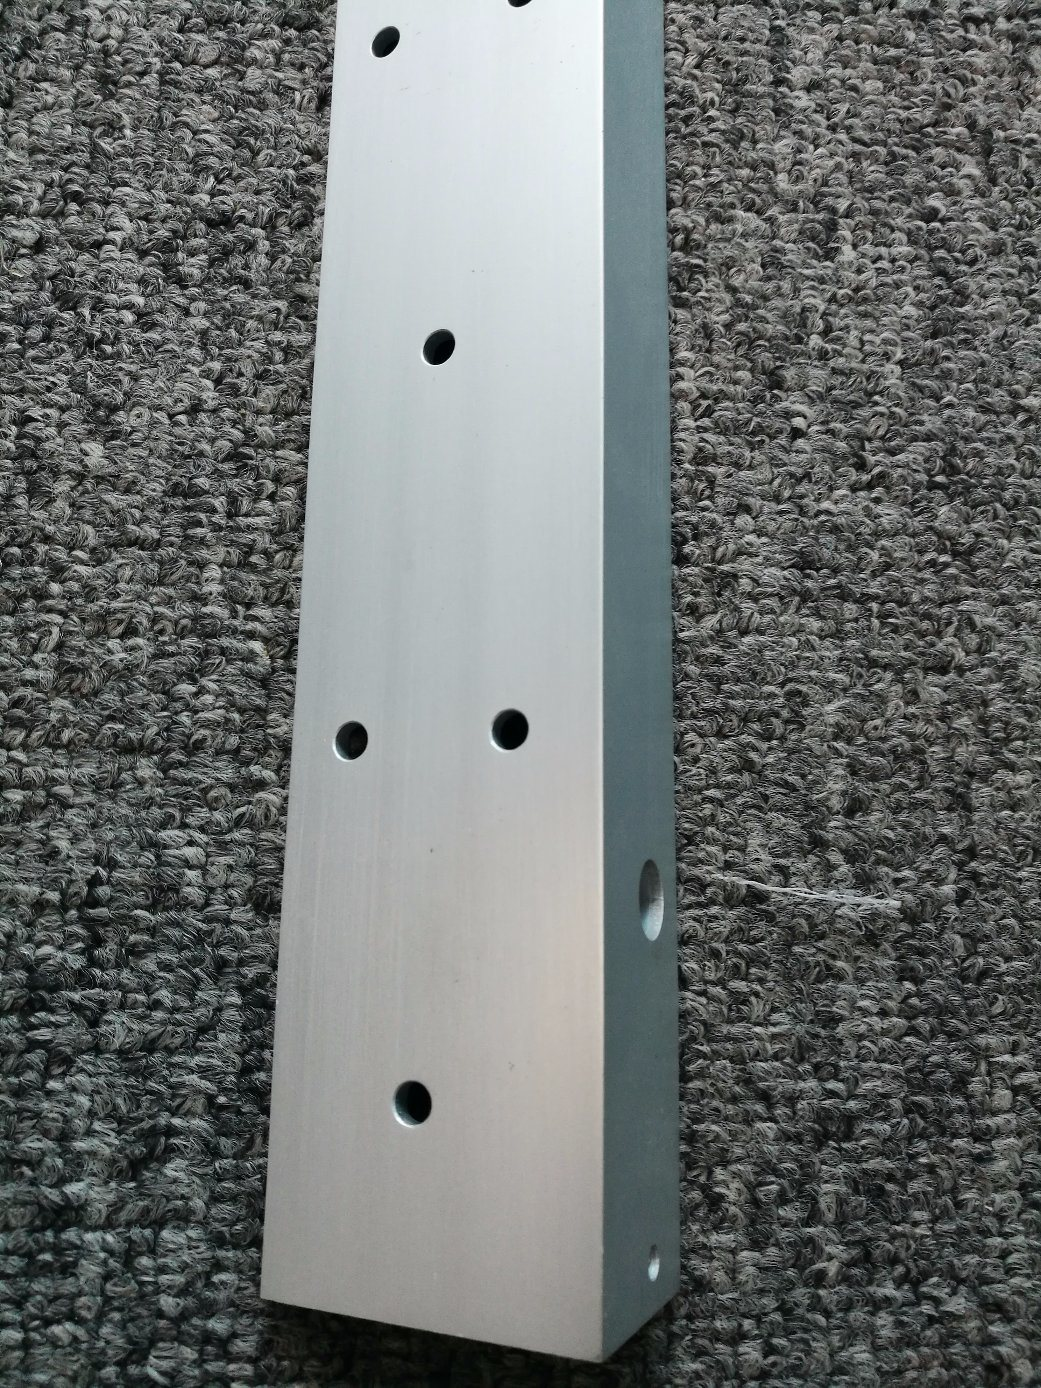 6061 Anodised Aluminium Extrusion Profiles with Punching Holes